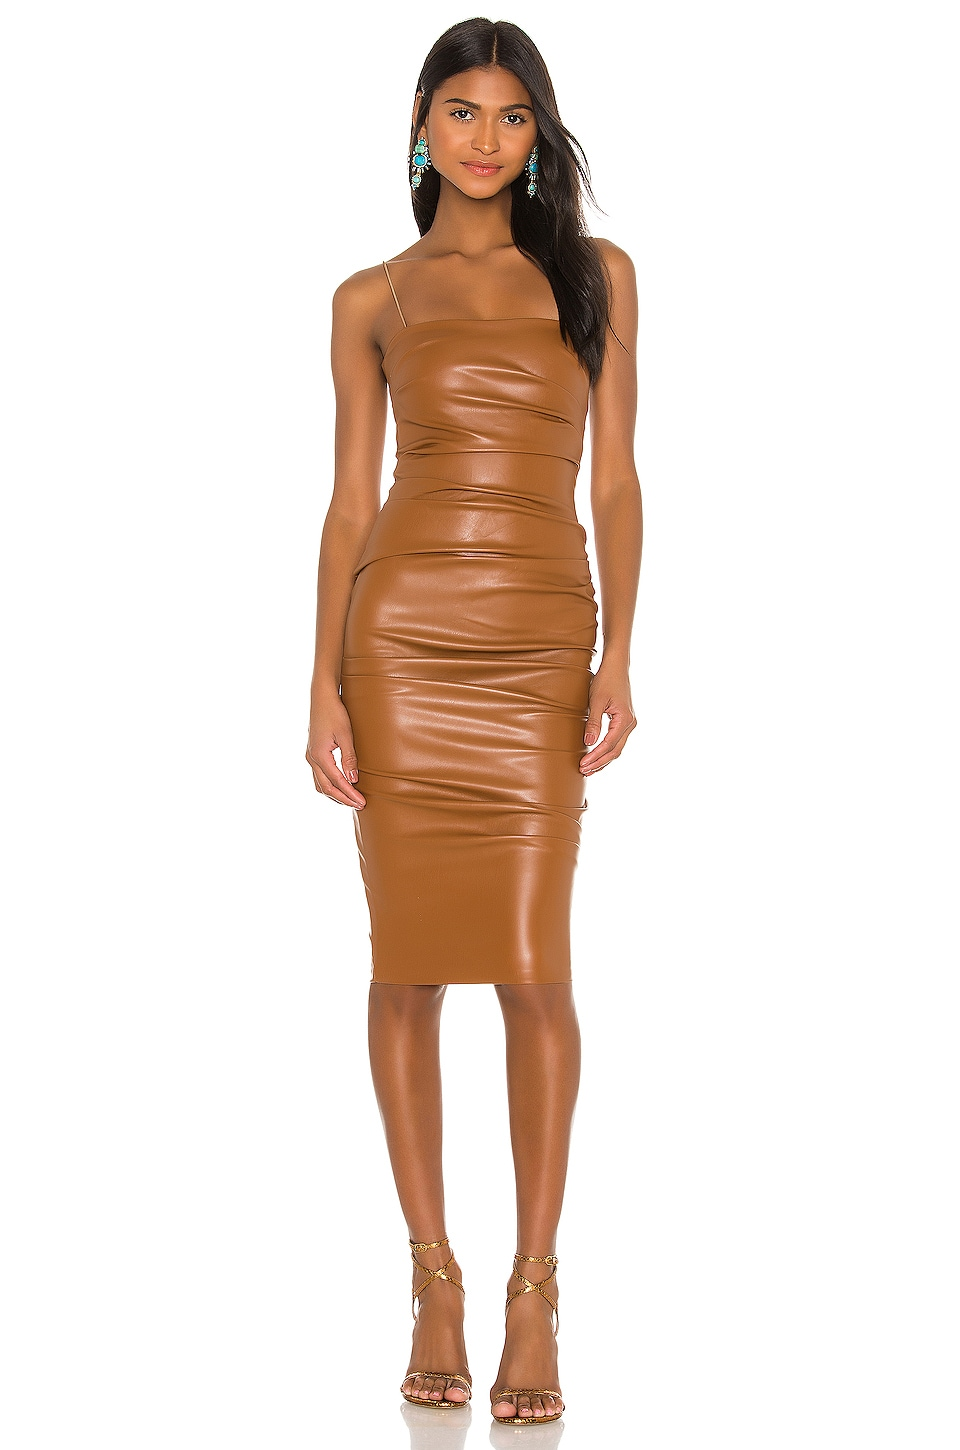 Nookie Posse X Revolve Faux Leather Midi Dress In Brown Revolve Revolve reviews and revolve.com customer ratings for january 2021. nookie